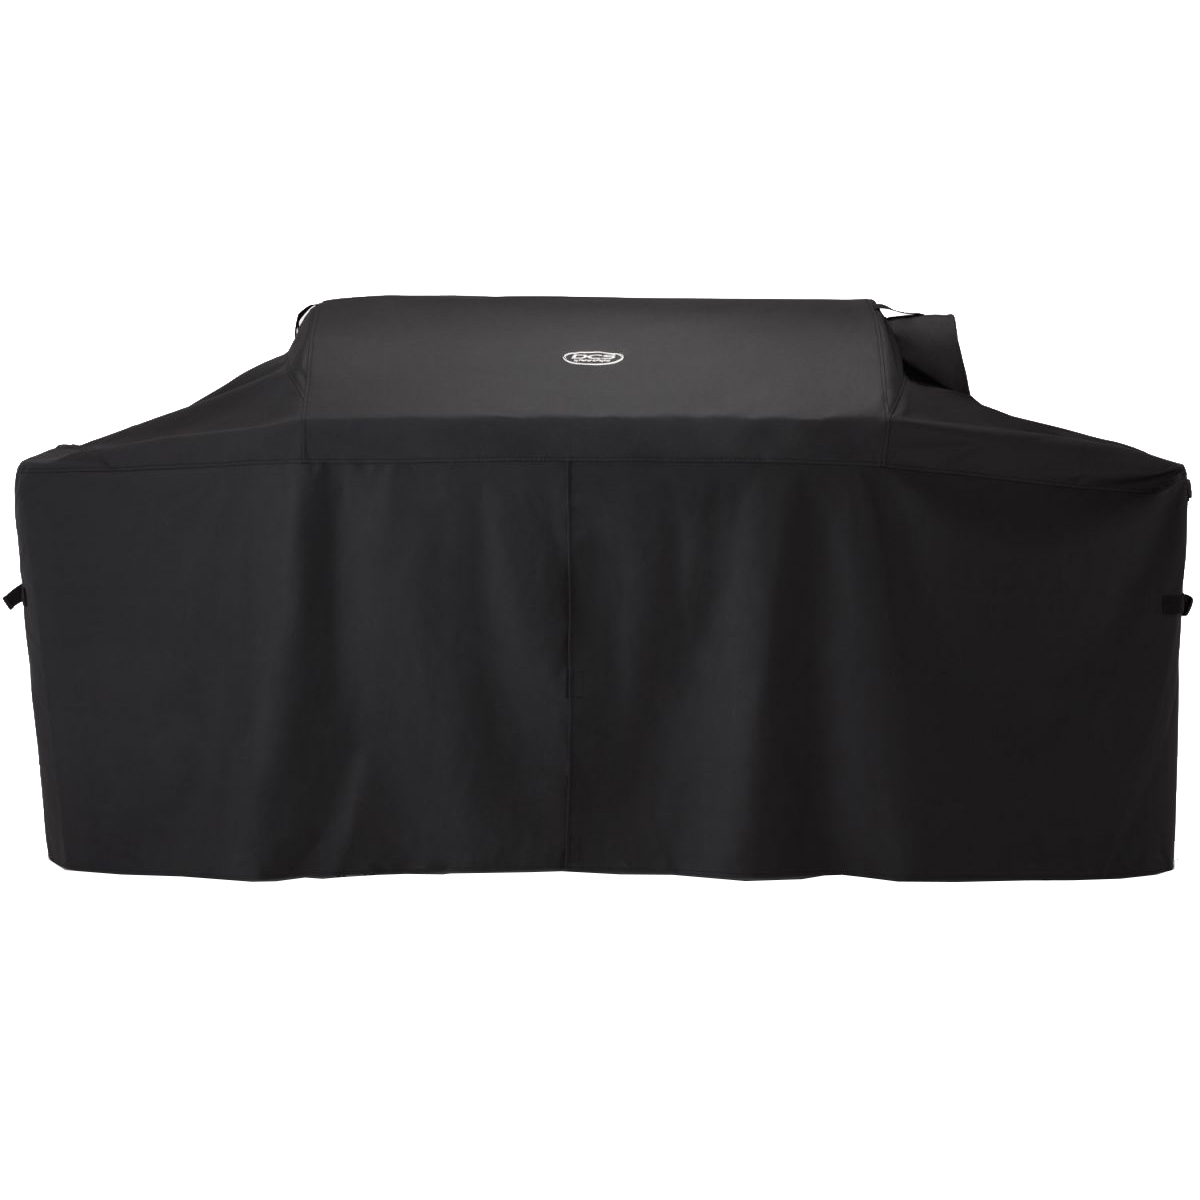 DCS Grill Cover for 30 inch Built In Grills